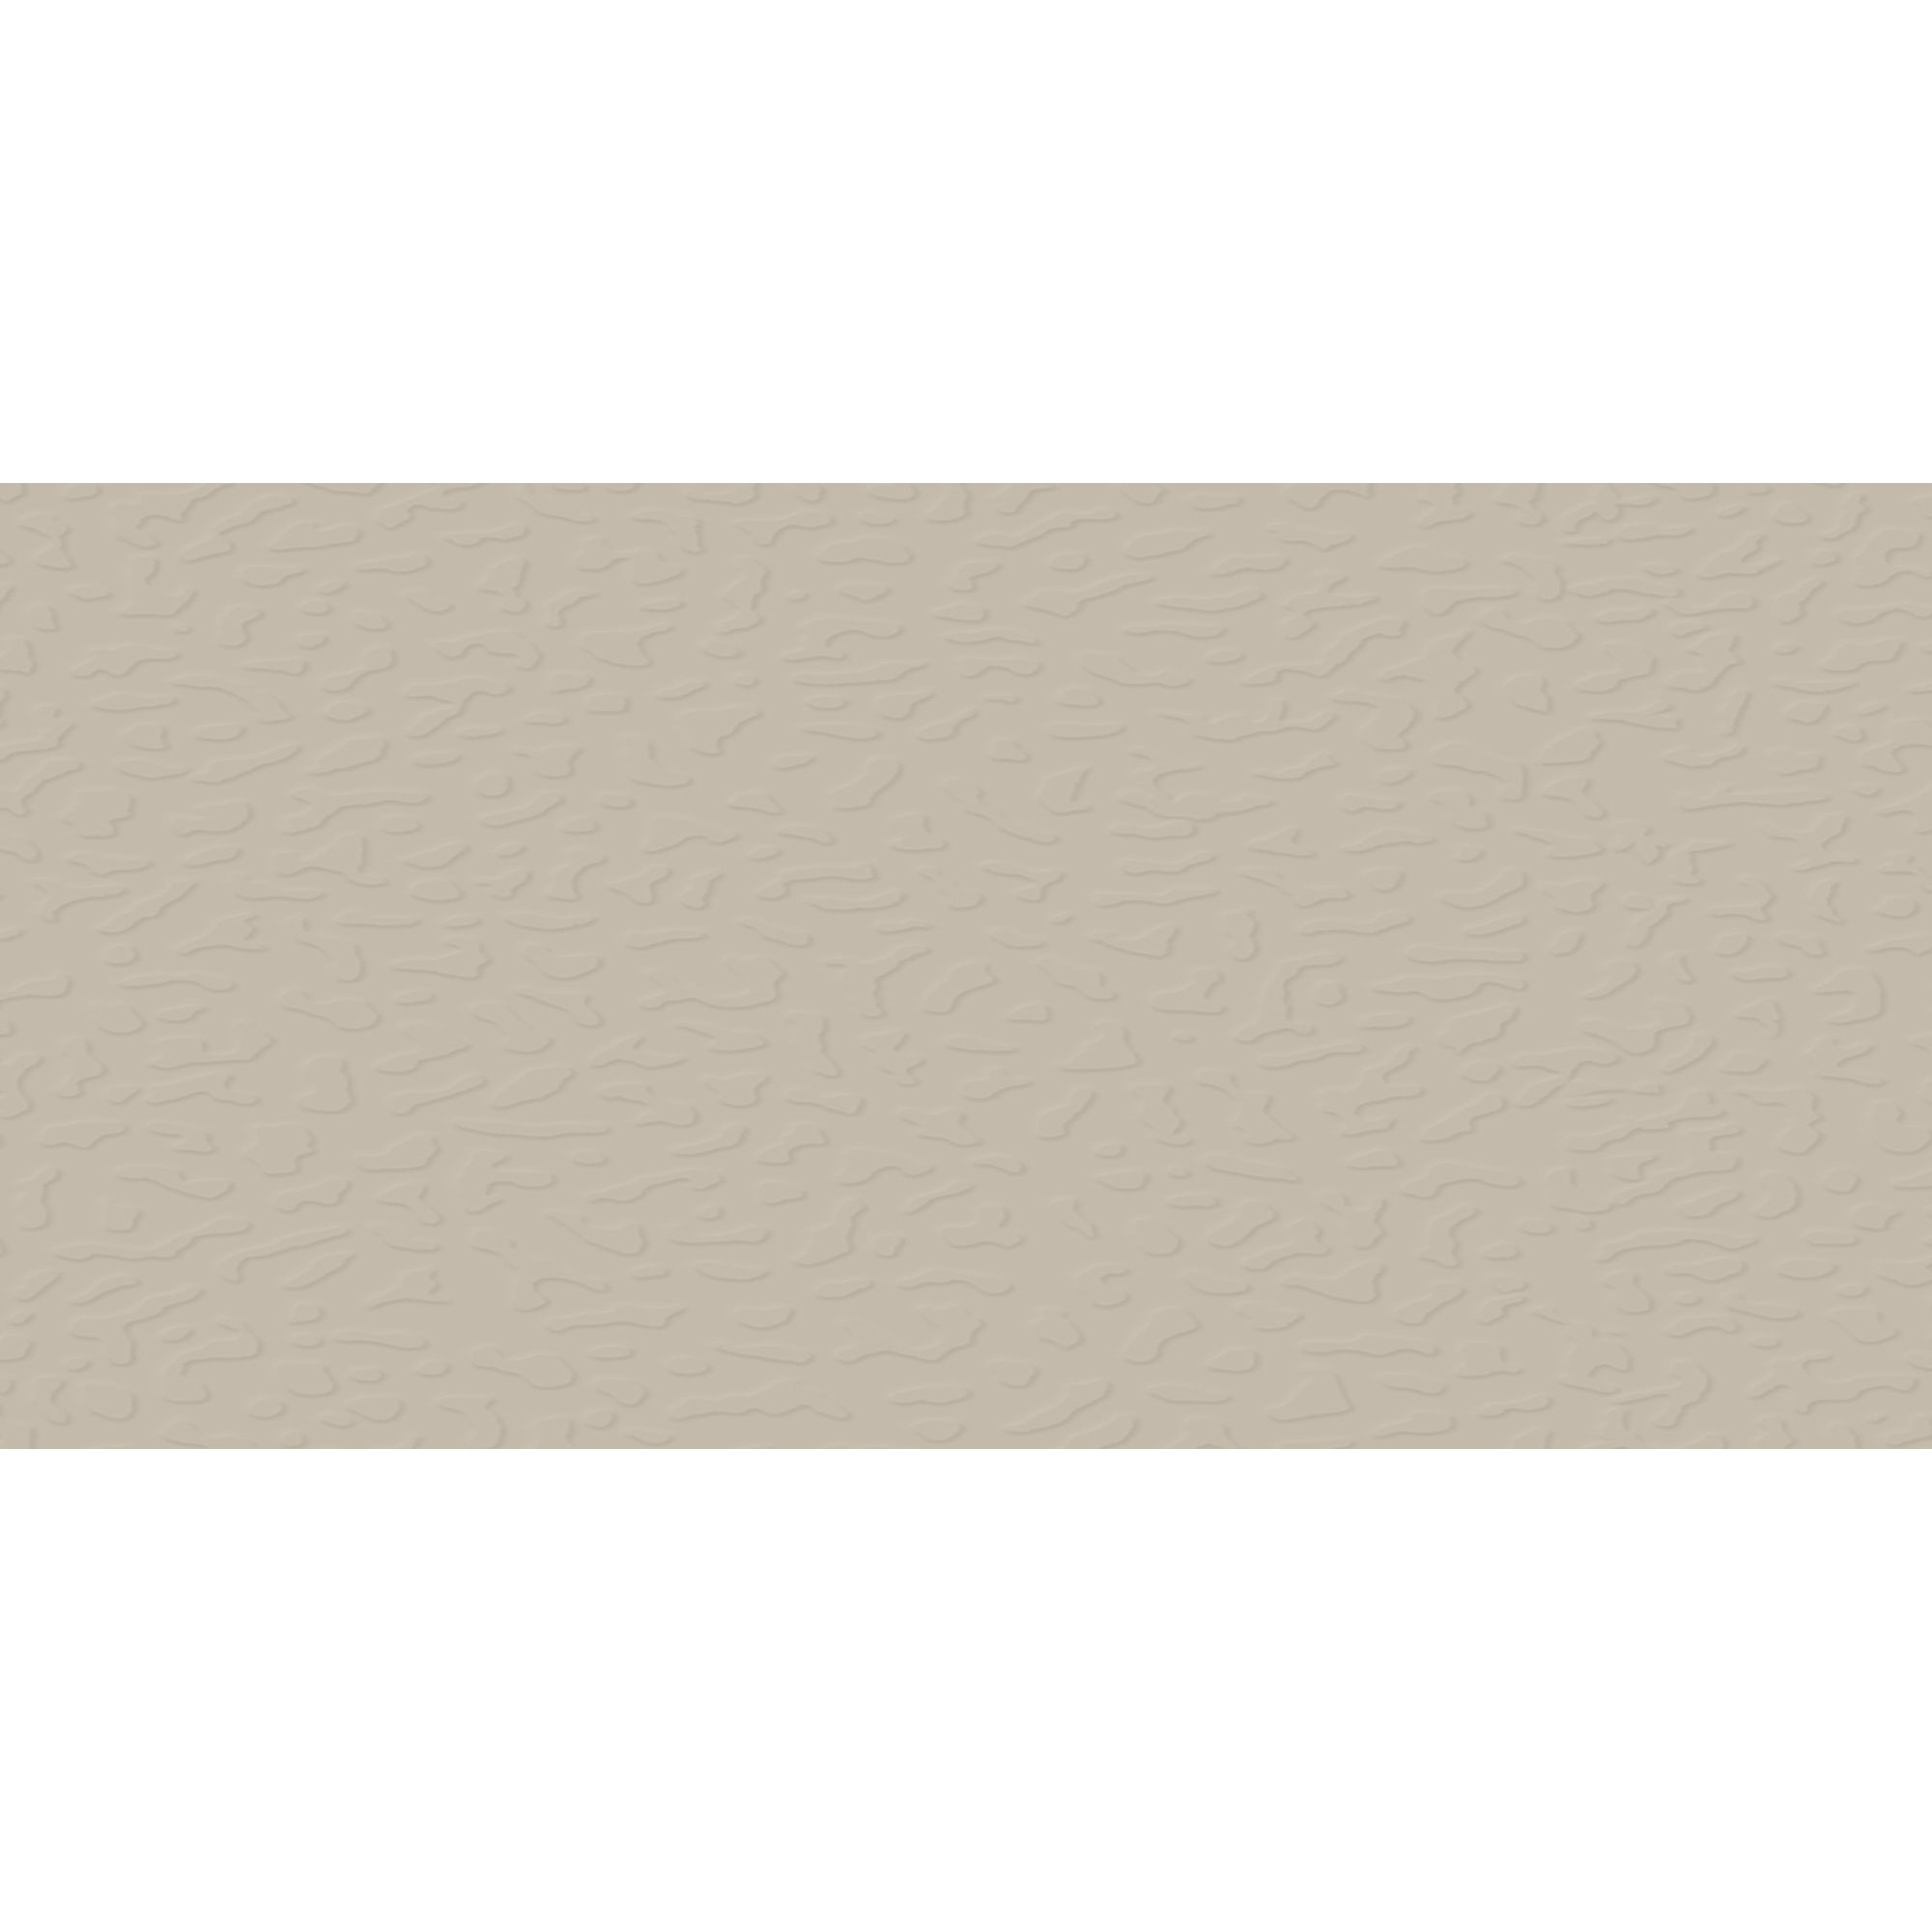 Roppe Designers Choice Textured 6 x 12 Natural